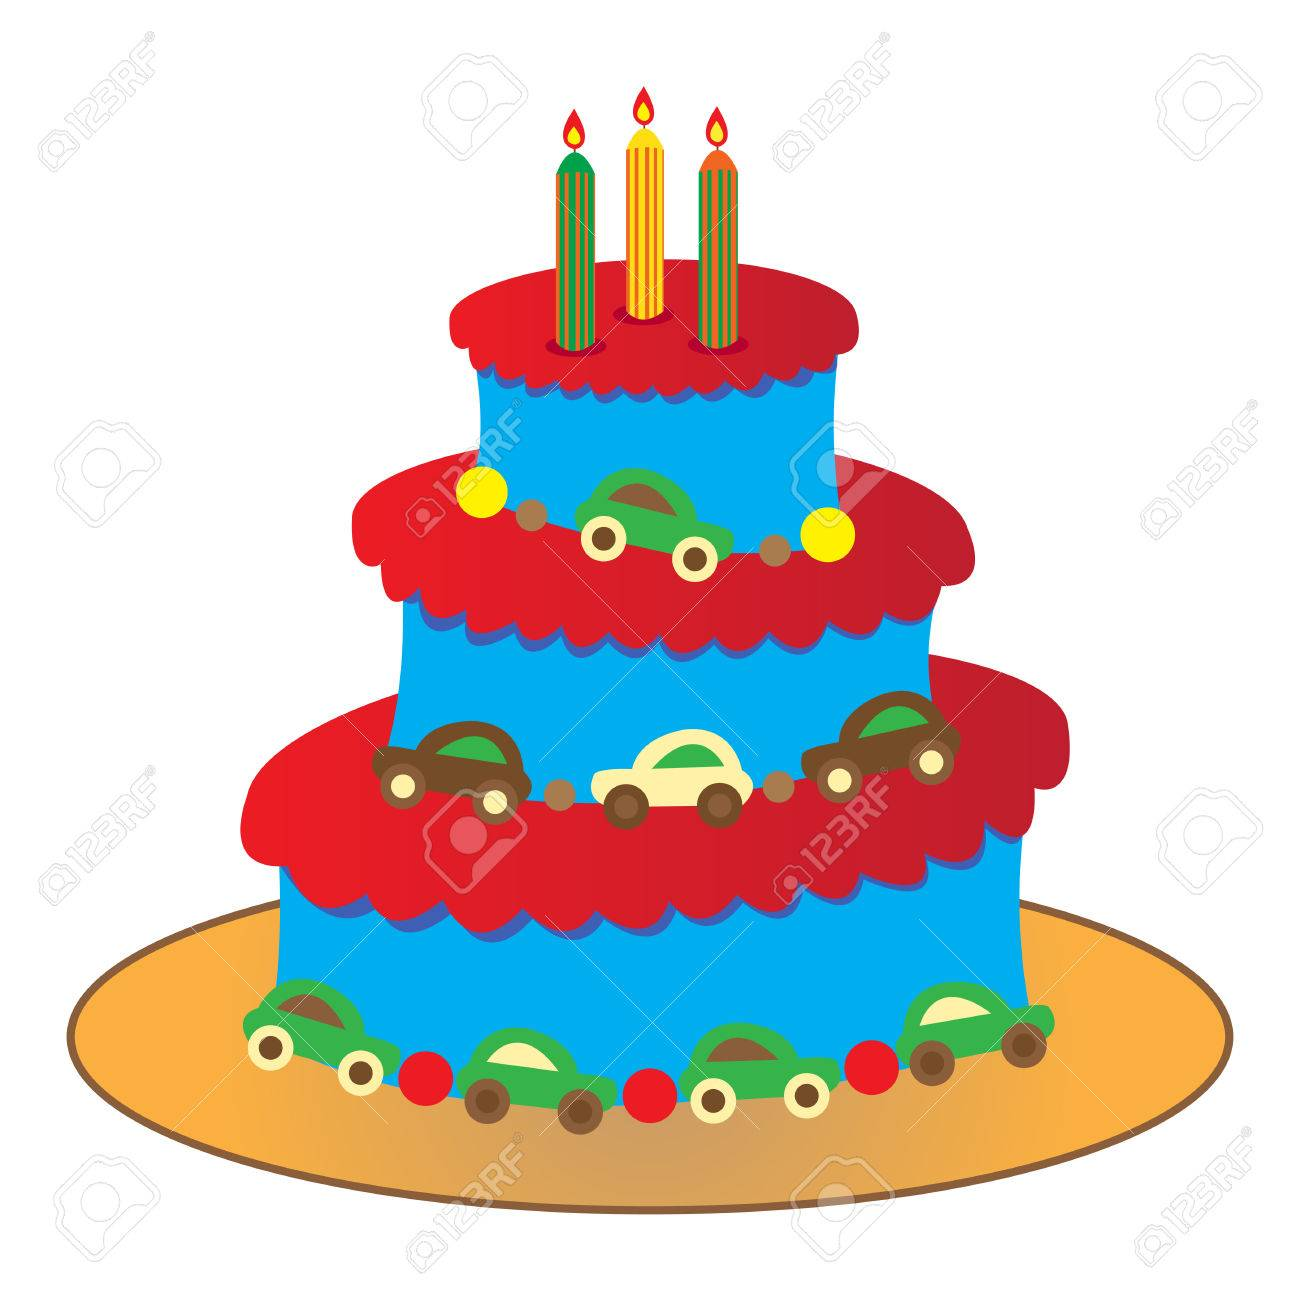 Big Round Birthday Cake For A Boy Isolated On White Stock Vector